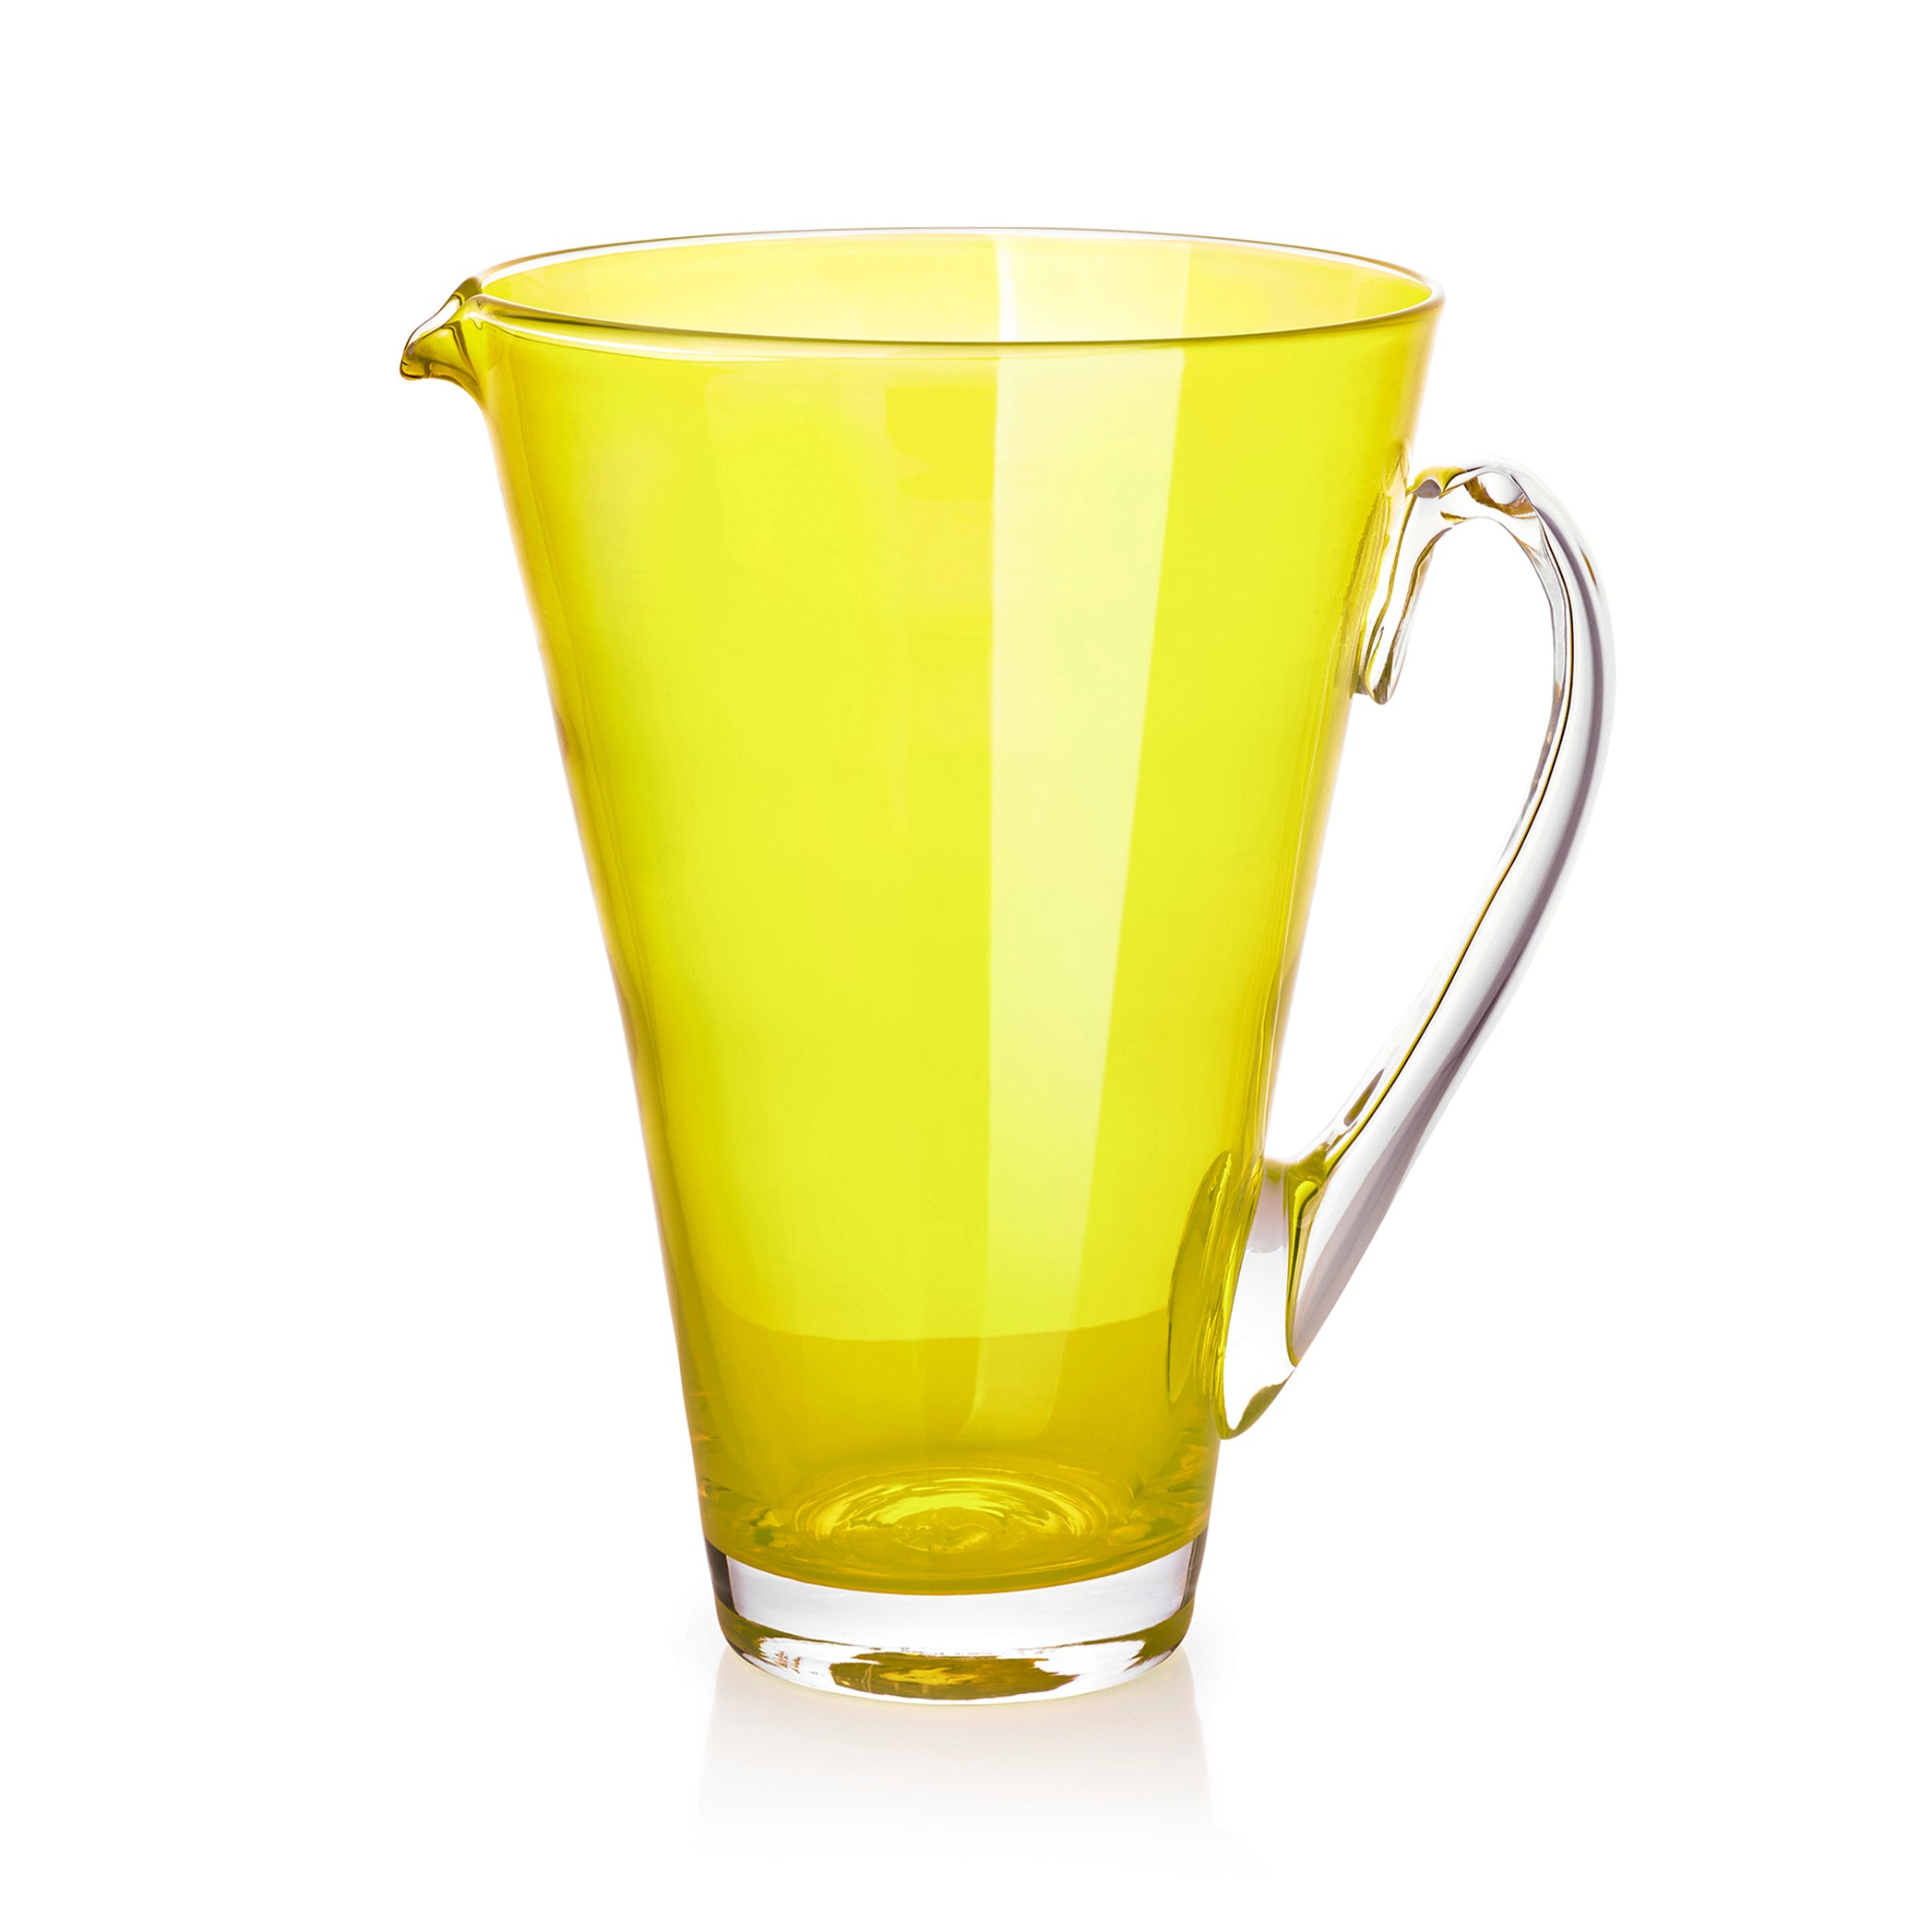 Handblown Glass Clair Jug in Lemon Yellow